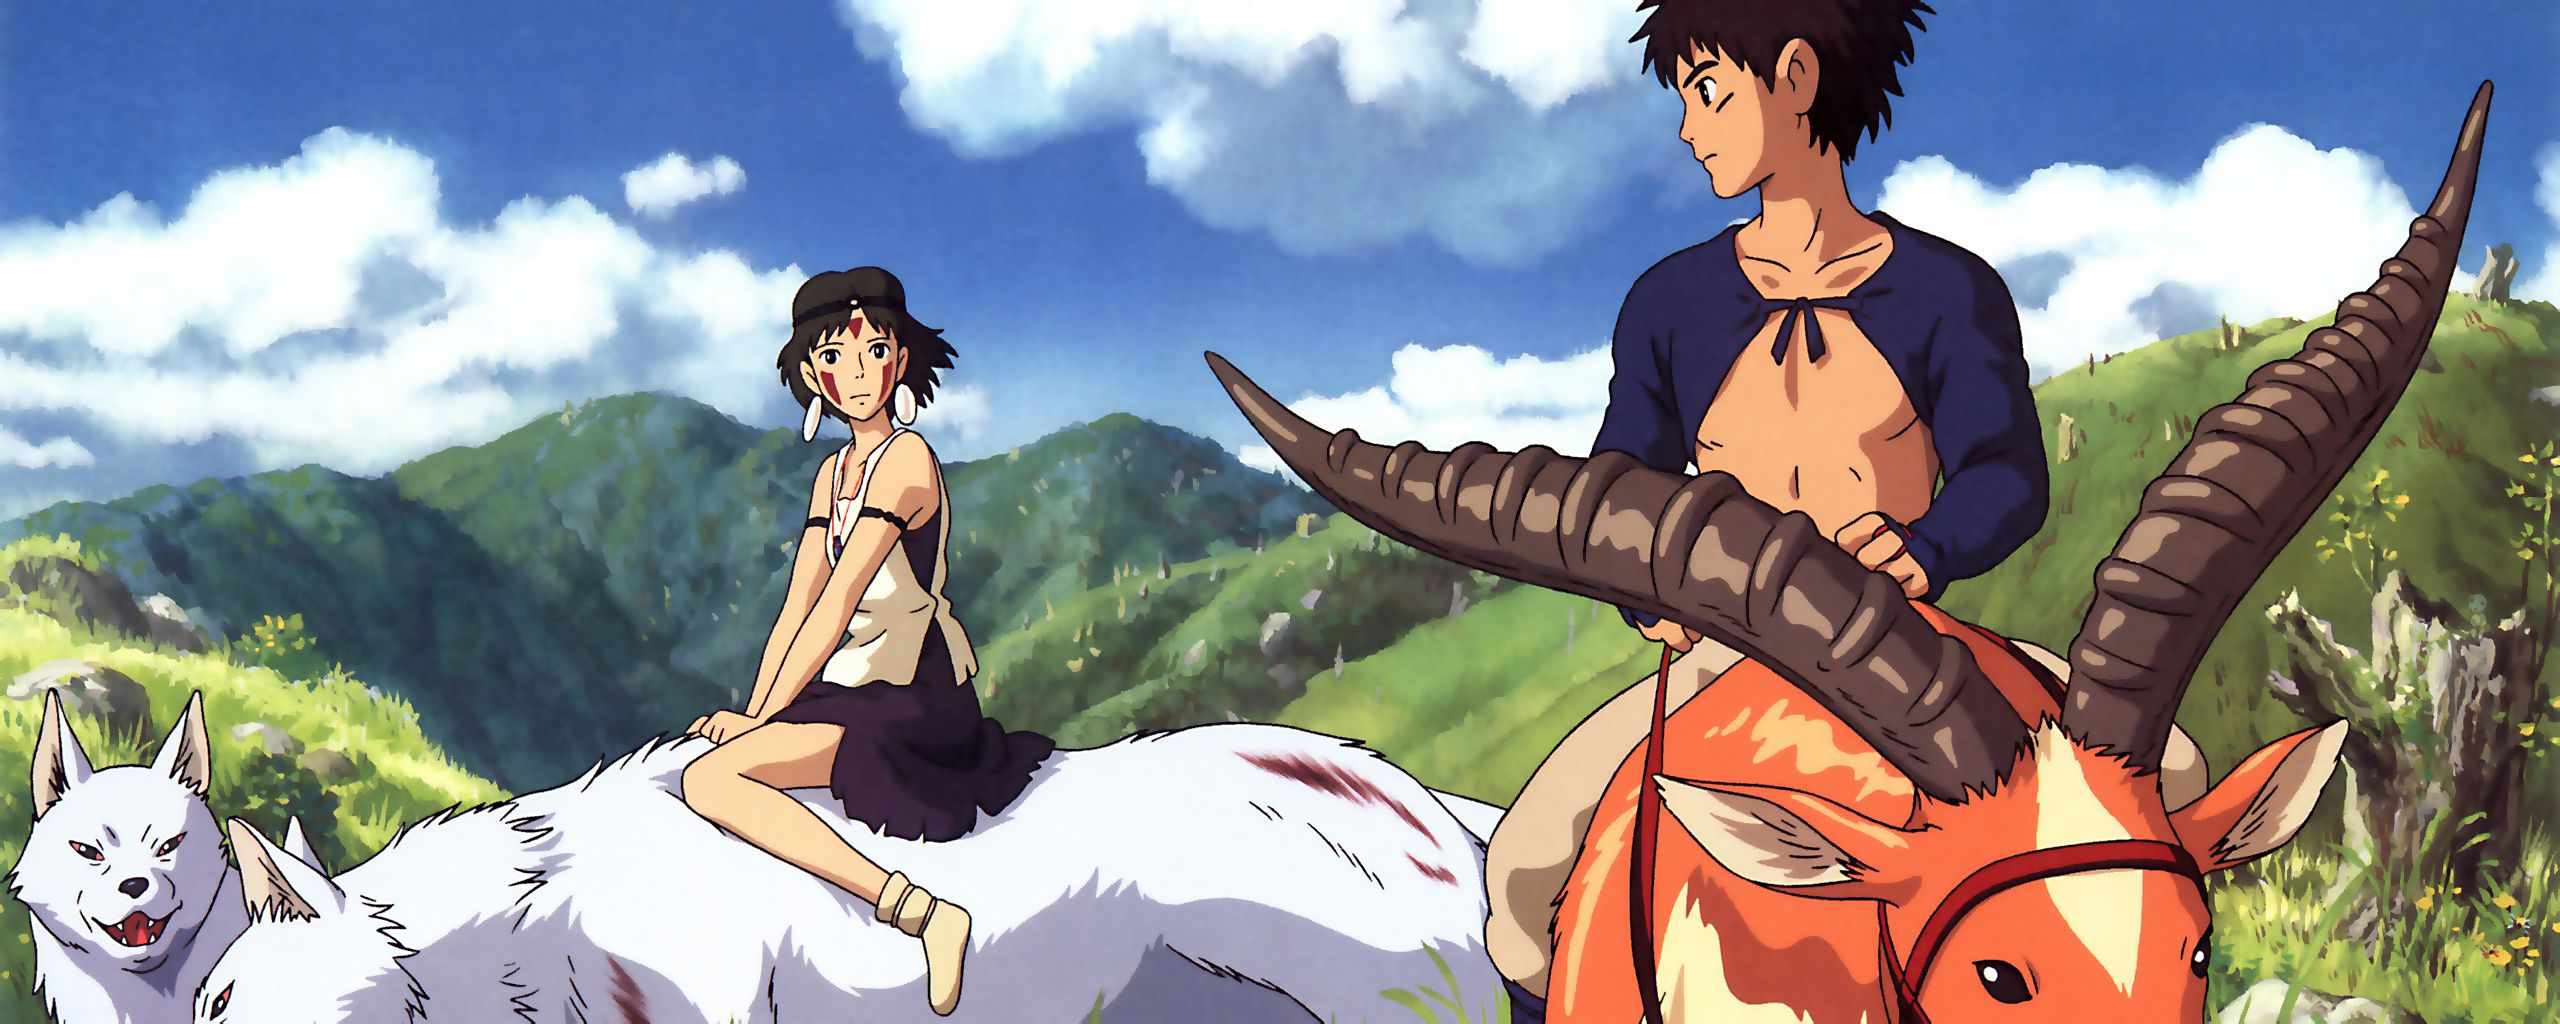 Princess Mononoke Studio Ghibli Wallpapers Top Free Princess Mononoke Studio Ghibli Backgrounds Wallpaperaccess